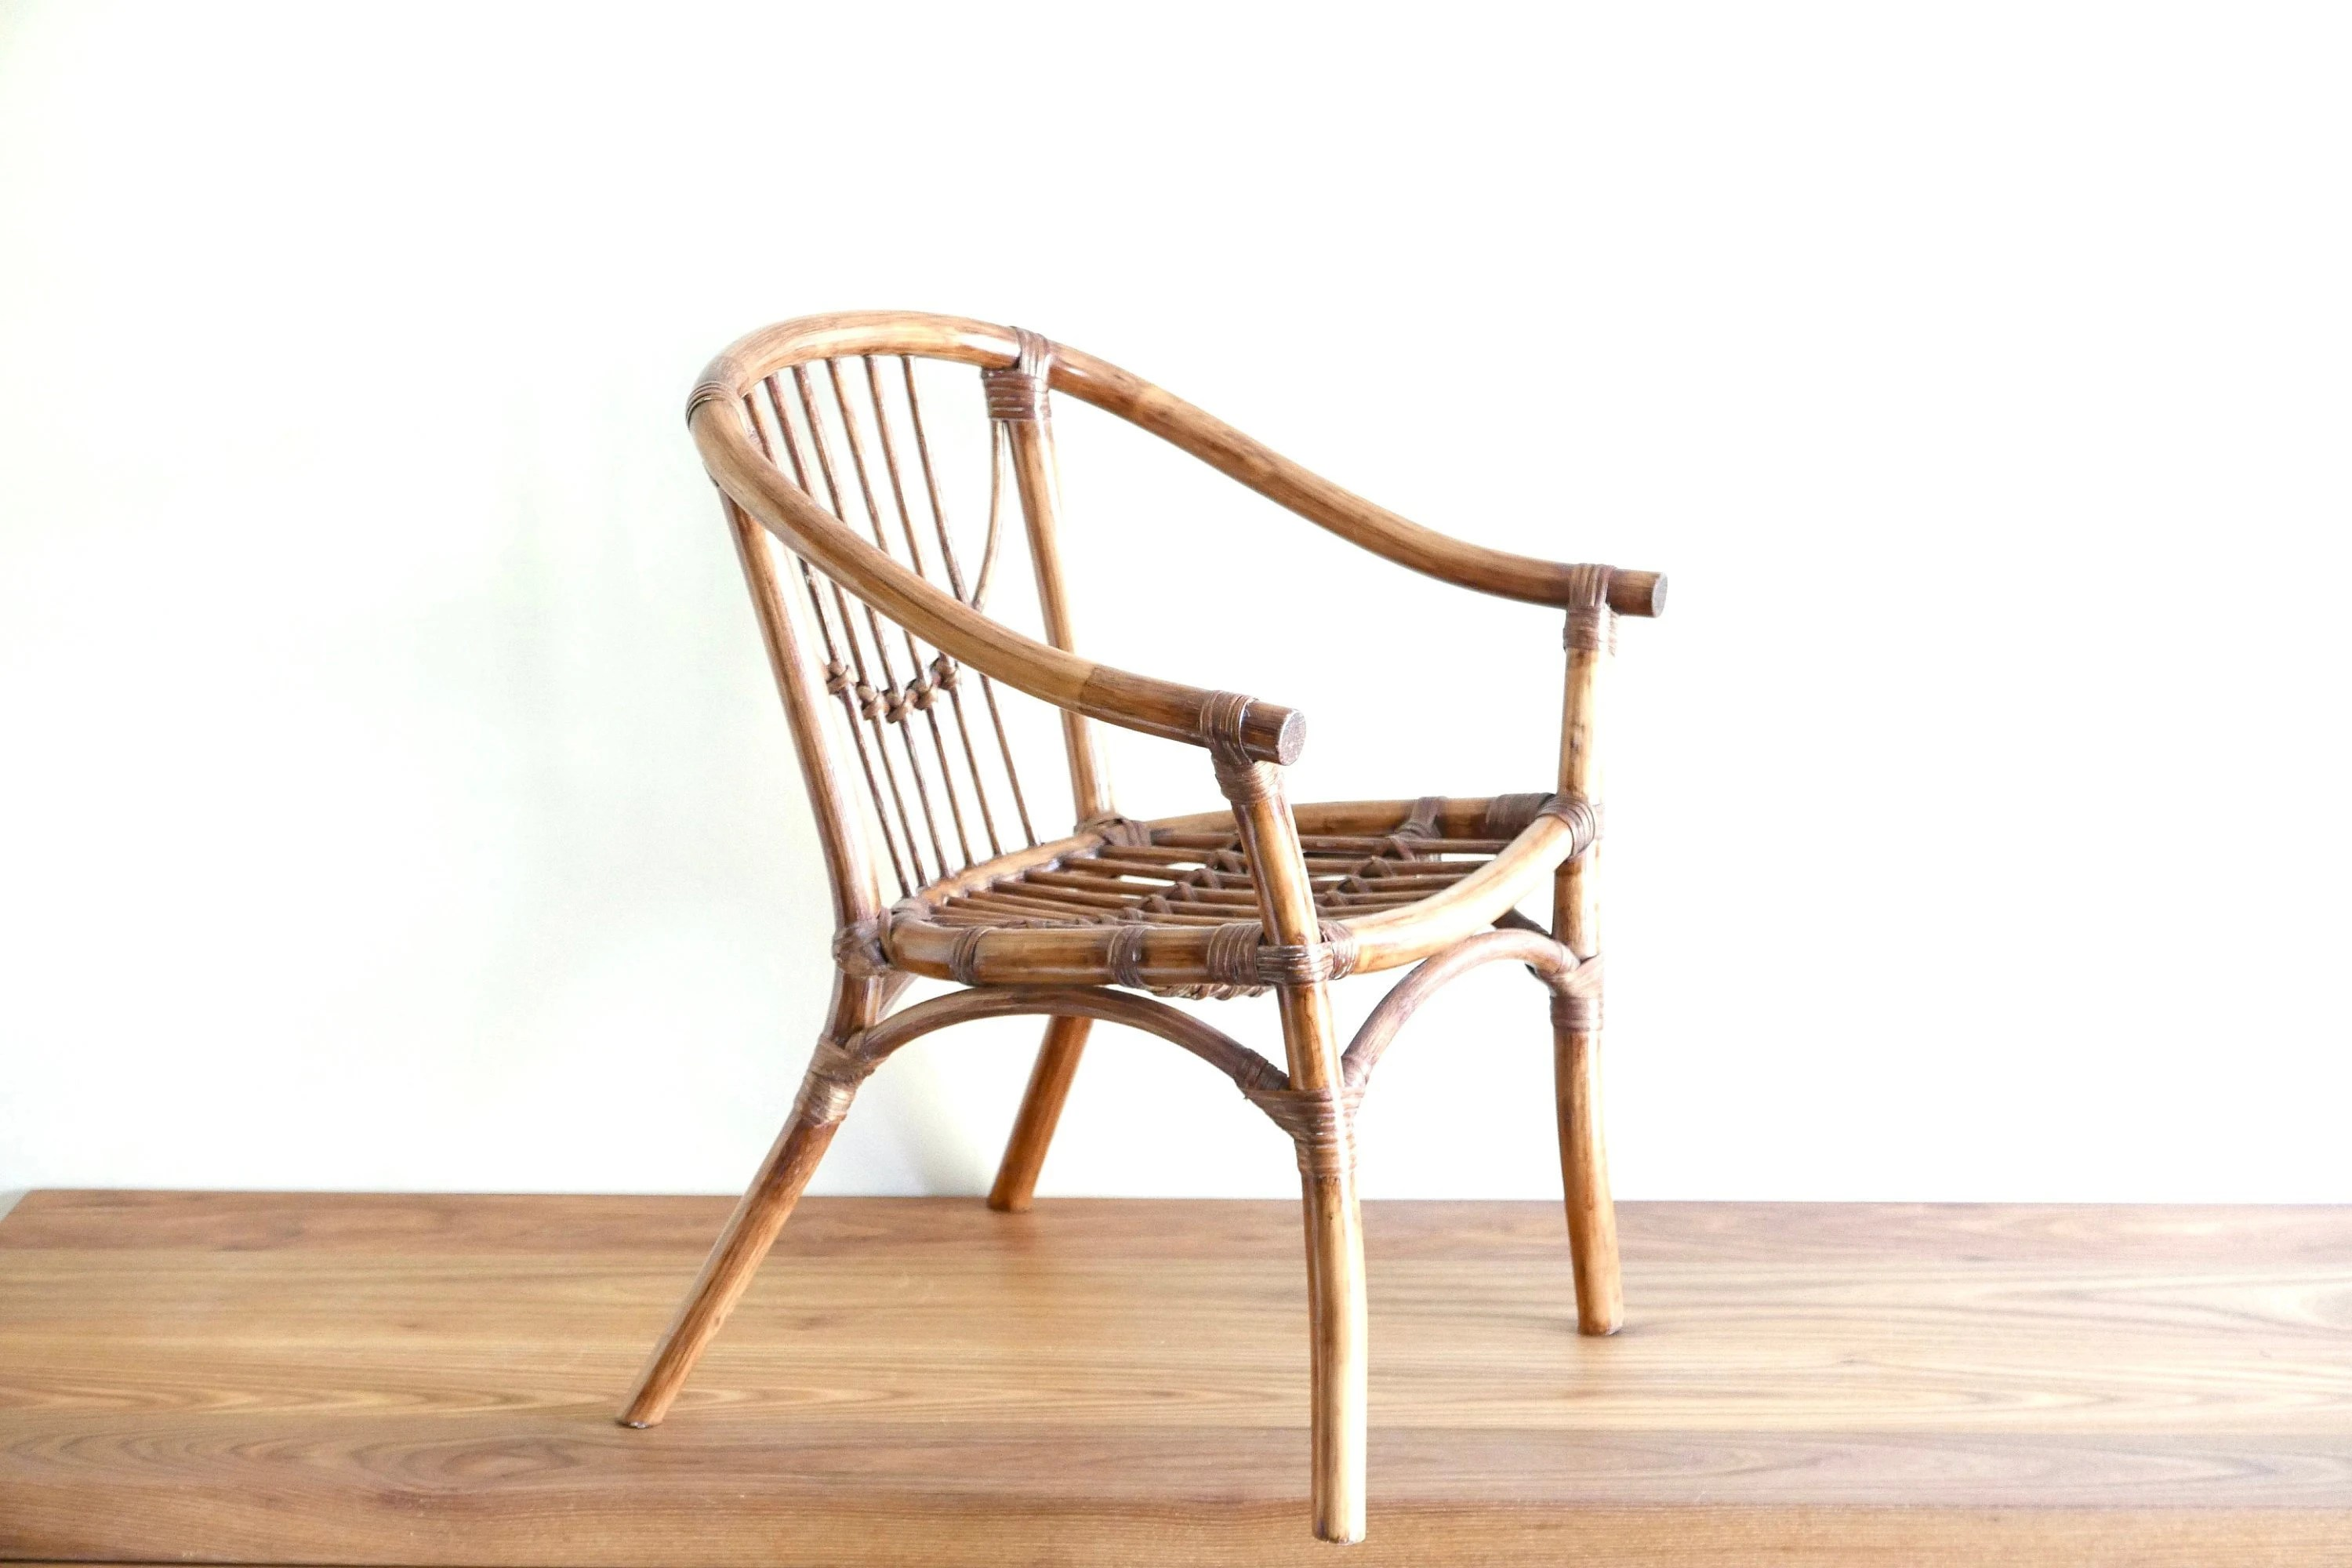 childs rattan chair slipper target child s bamboo etsy kids furniture french vintage and armchair 1950s bedroom mid century modern boho chic bohemian